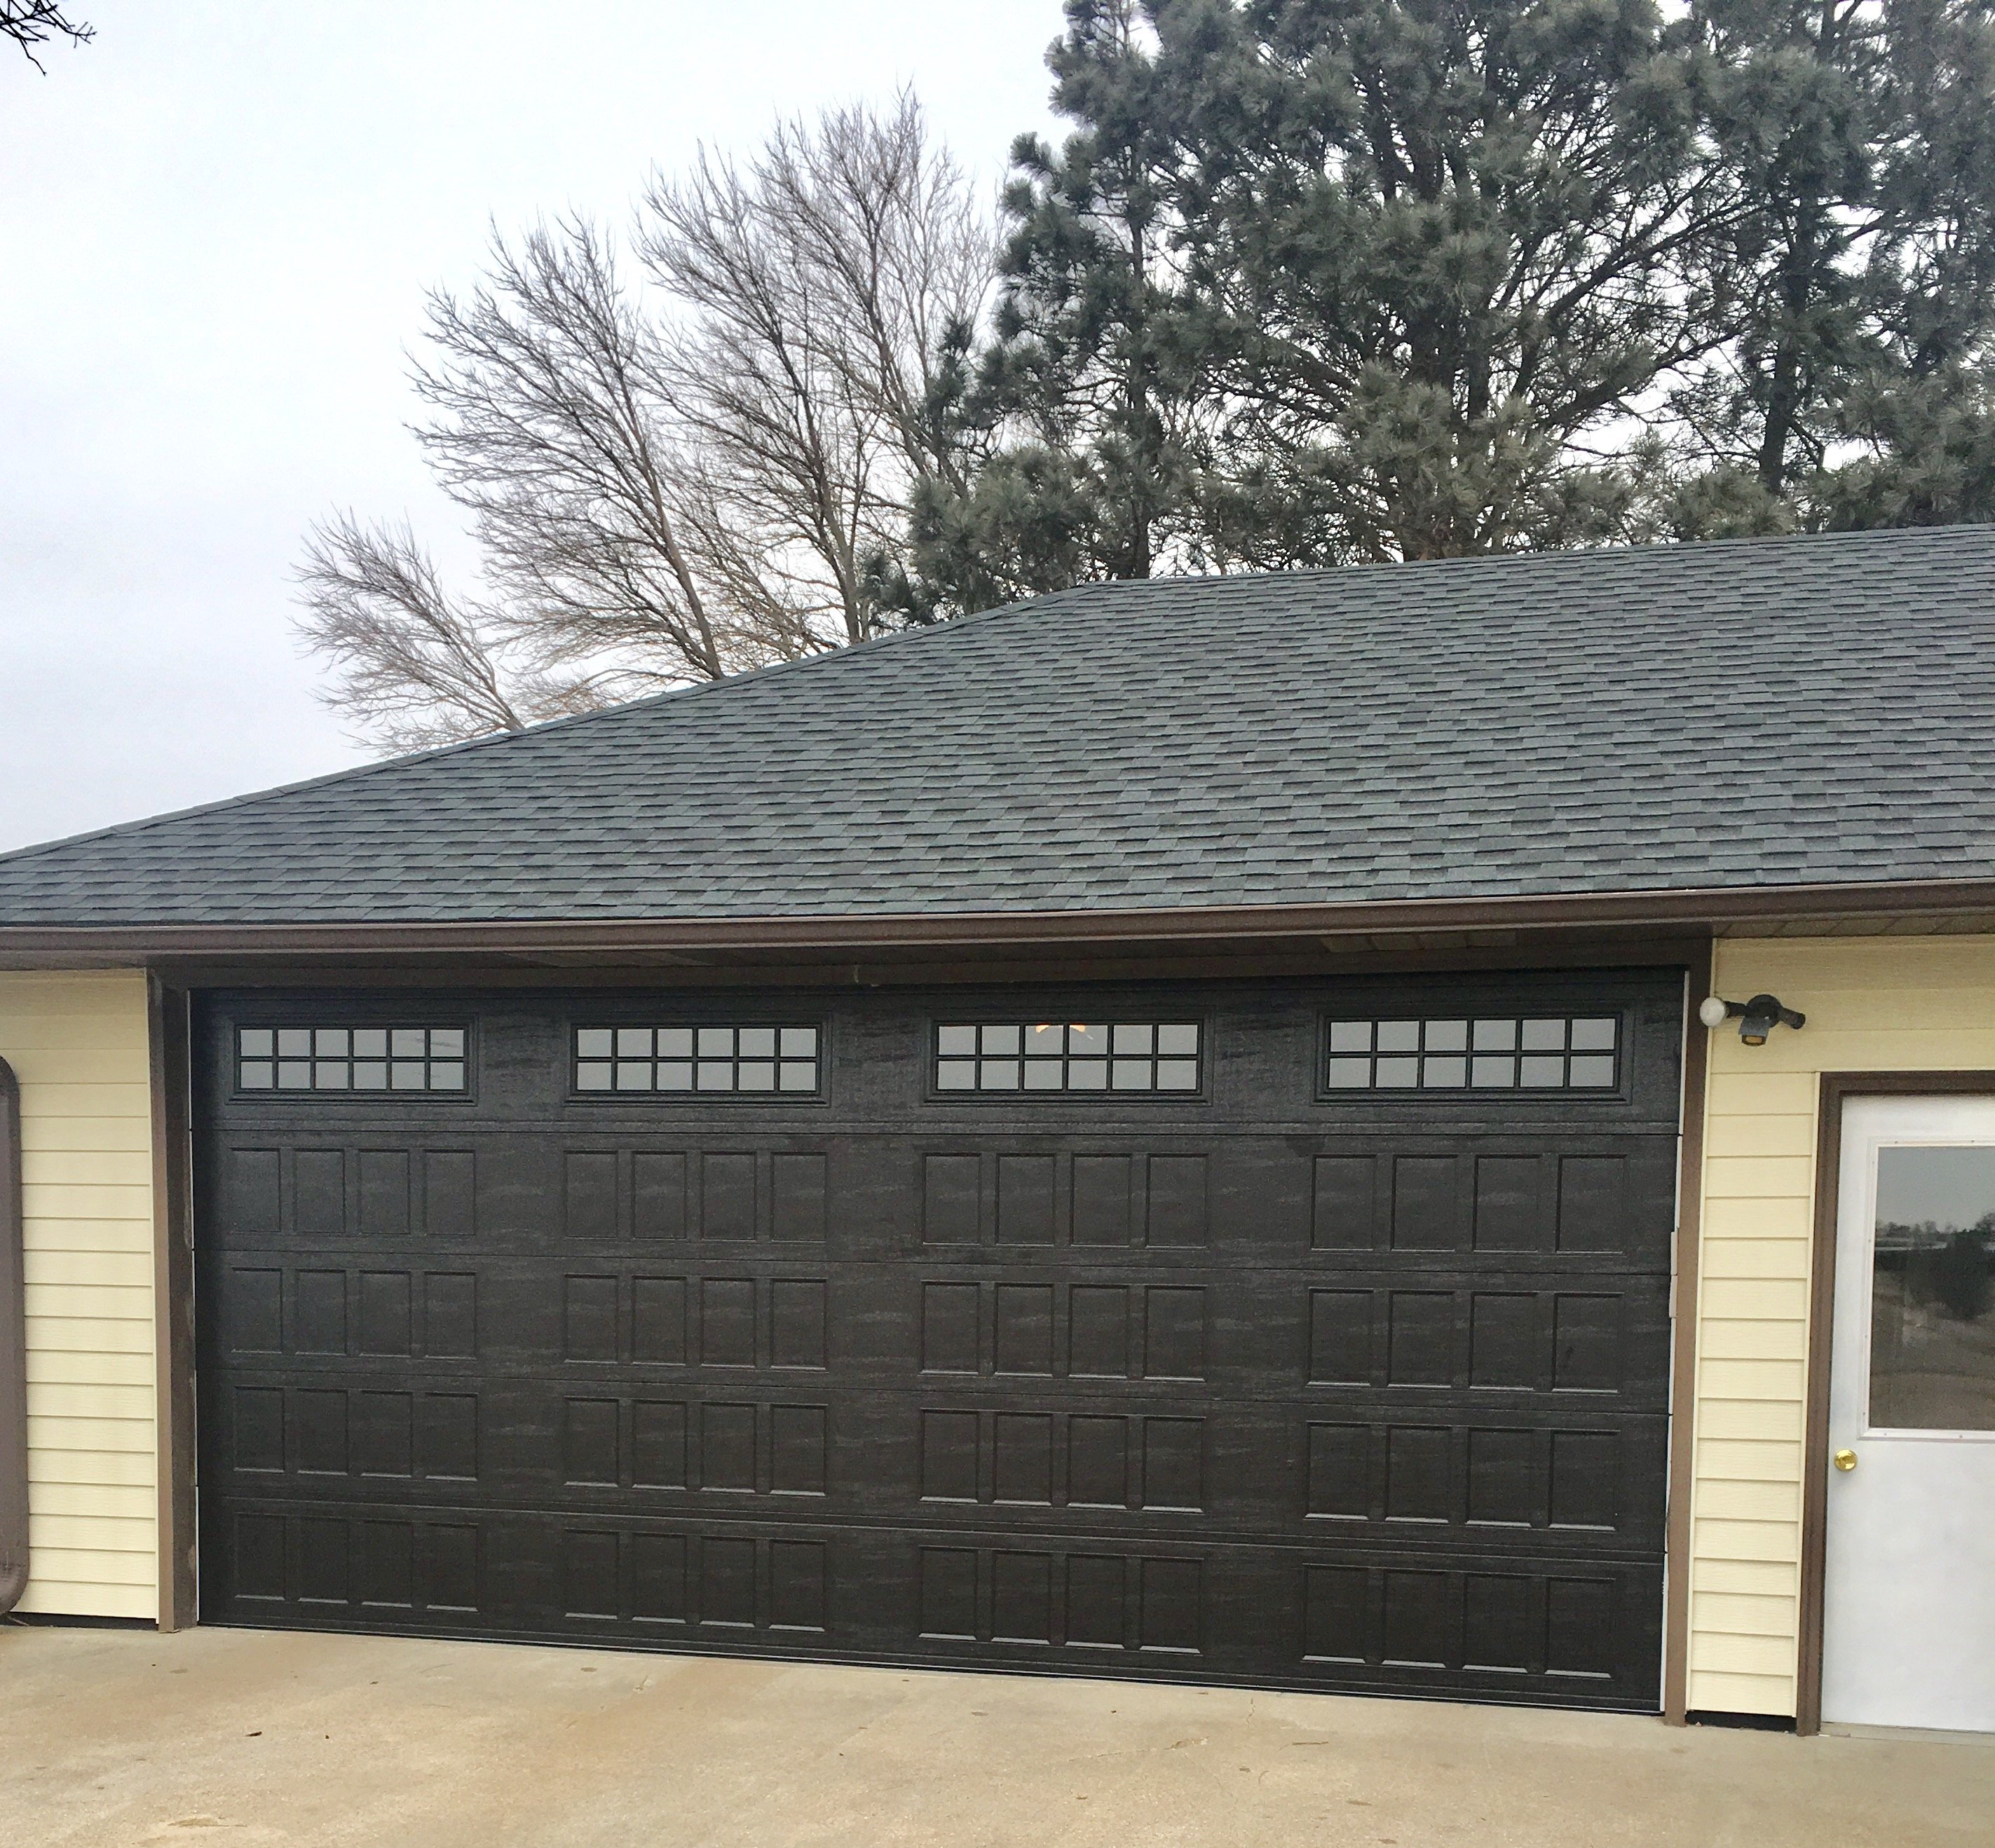 Lundys garage doors photo gallery omaha ne garage door rubansaba